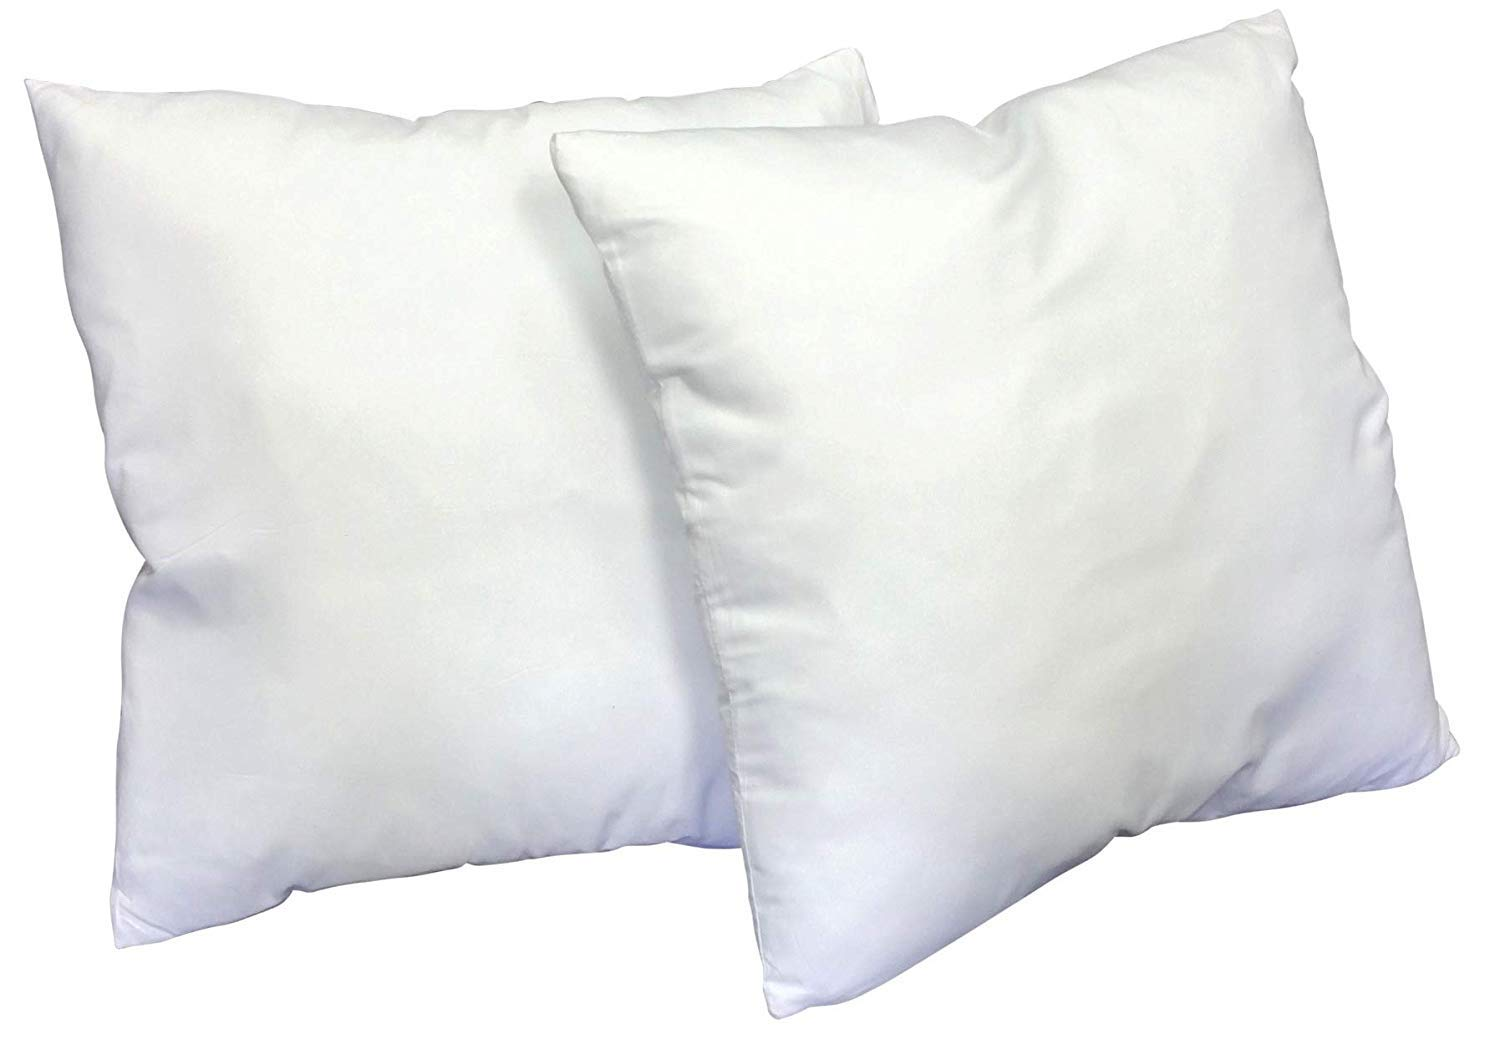 Web Linens Inc Multiple Sizes - Set of 2 - Poly Pillow Inserts with Zippered Cover- Premium Quality- 36x36- Exclusively by Blowout Bedding RN# 142035 by Web Linens Inc